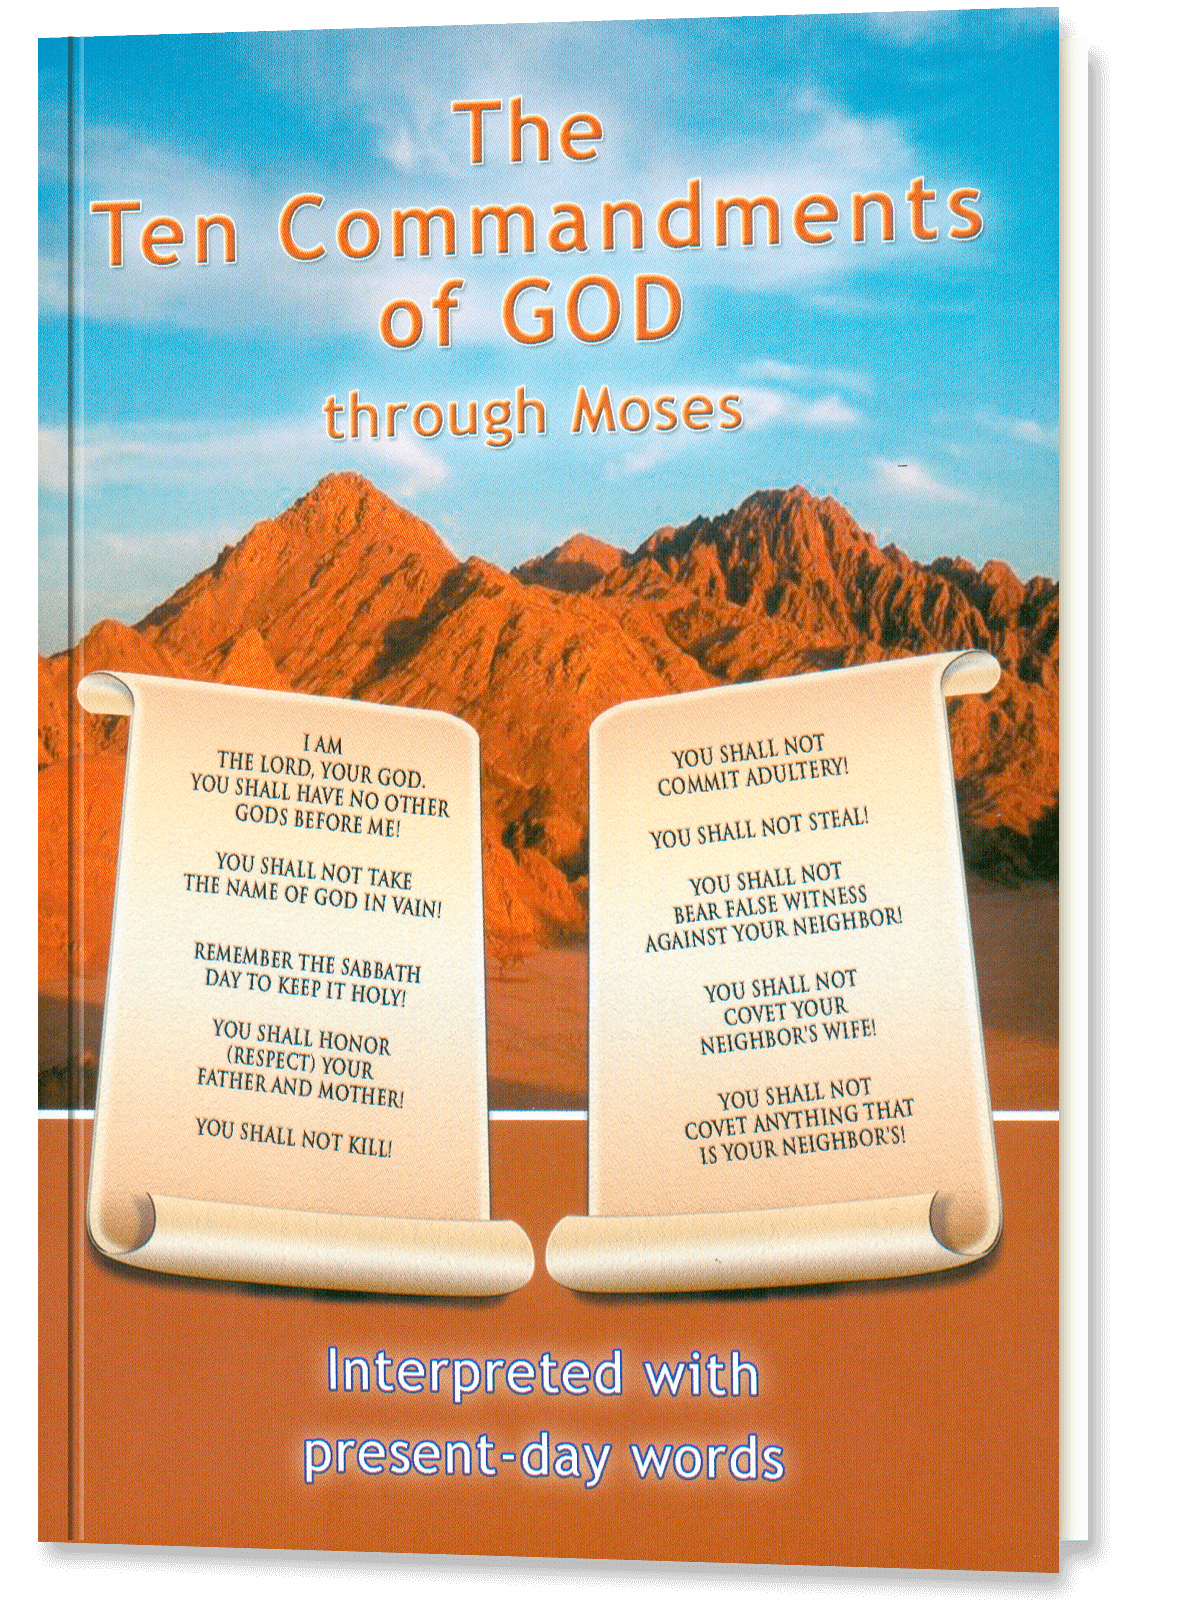 The Ten Commandments of God through Moses